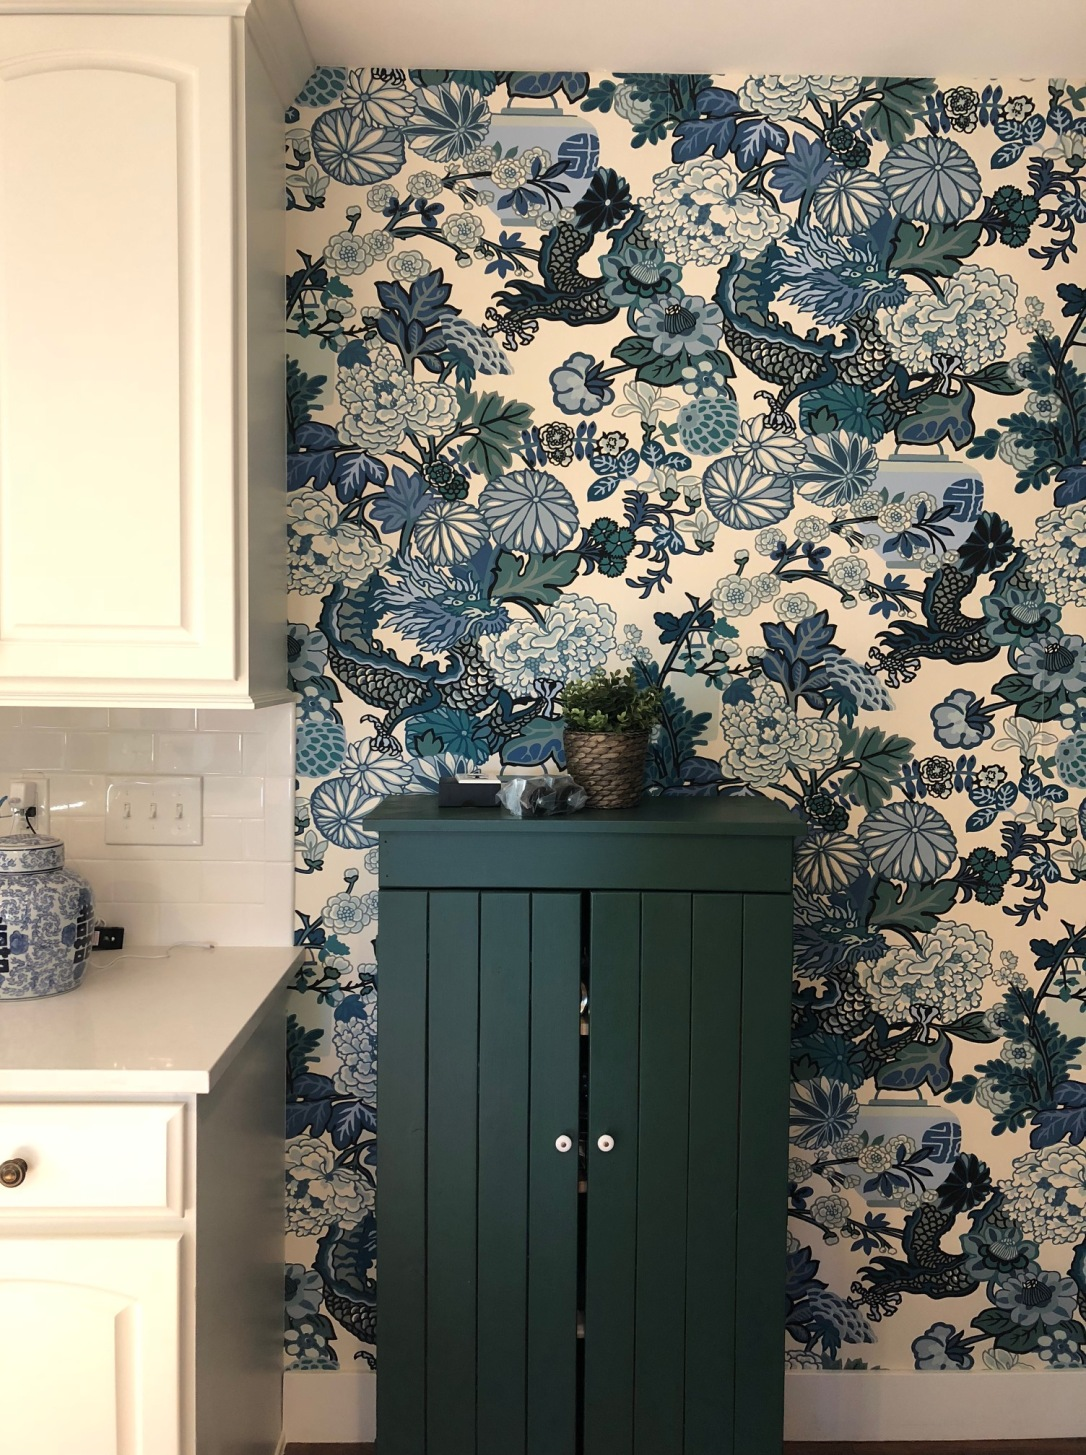 wallpaper in kitchen